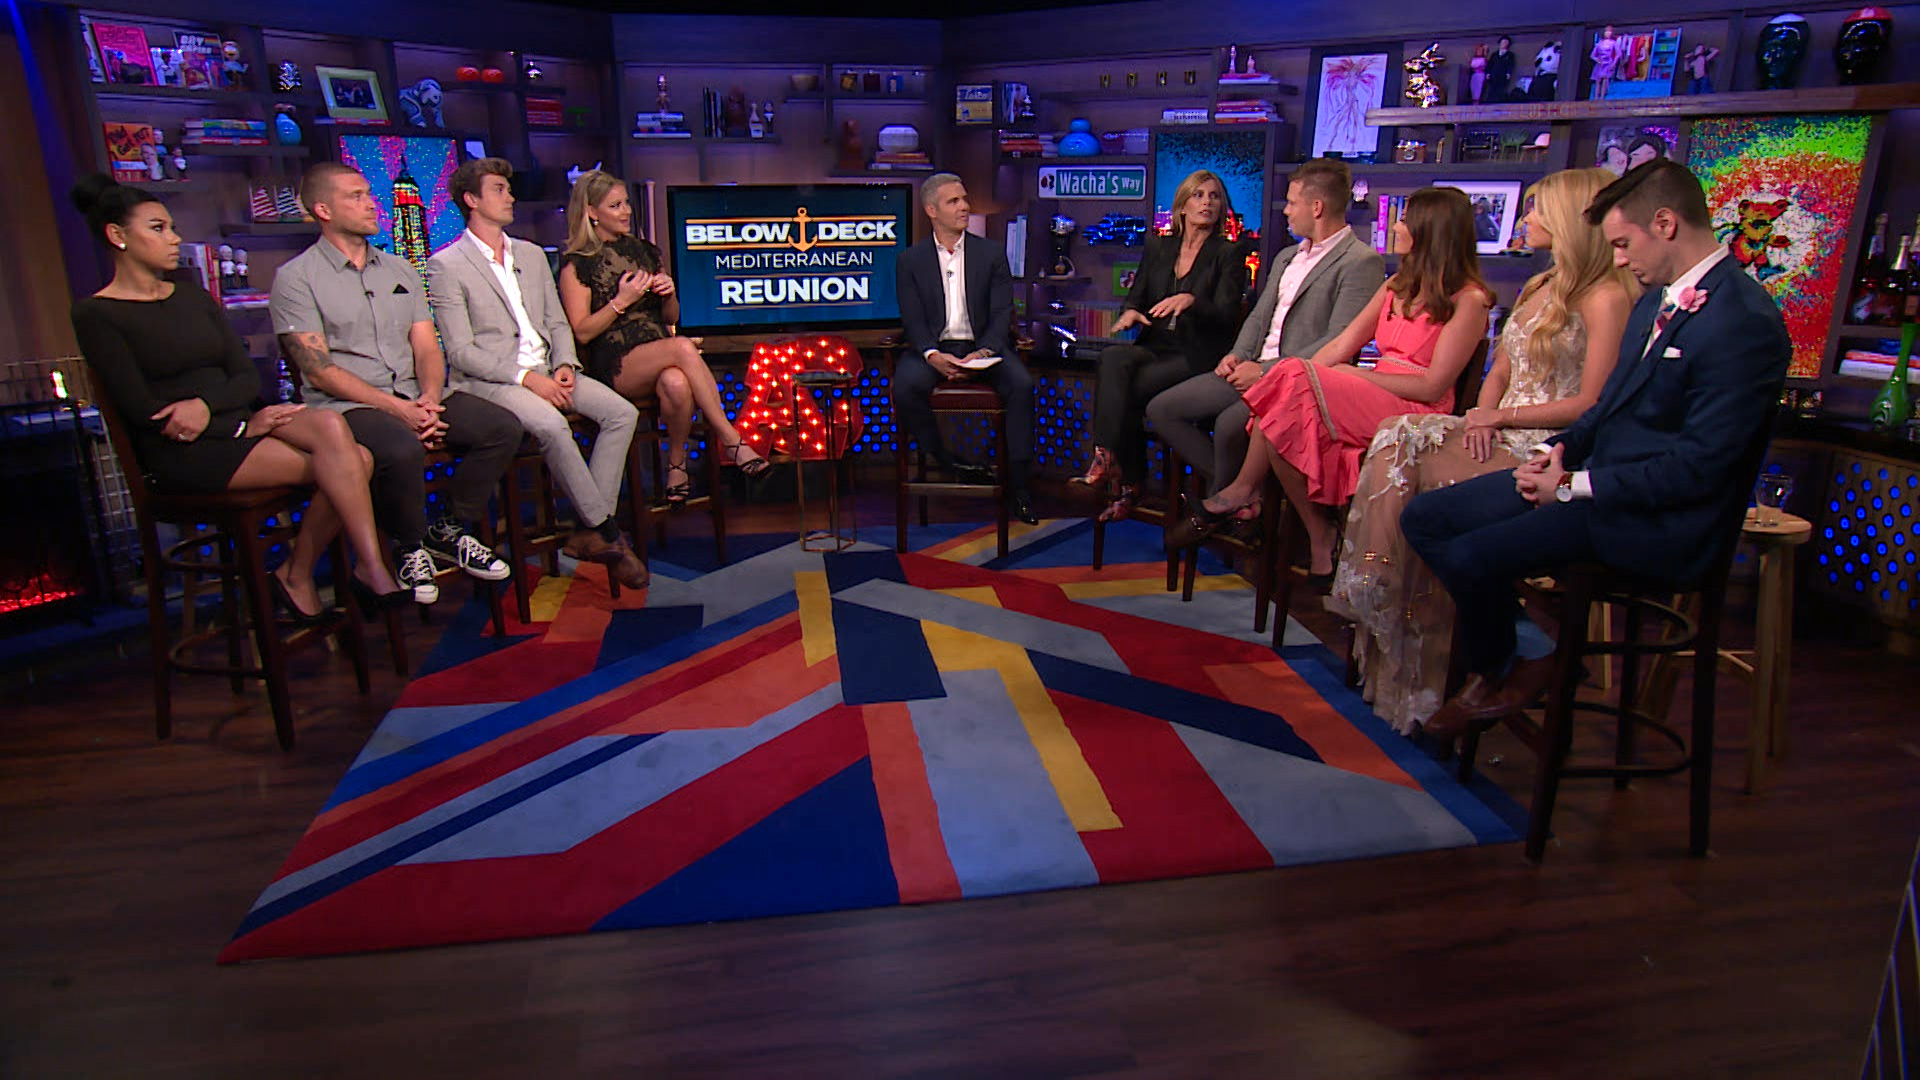 Below Deck Mediterranean Season 3 Crew Updates After Reunion